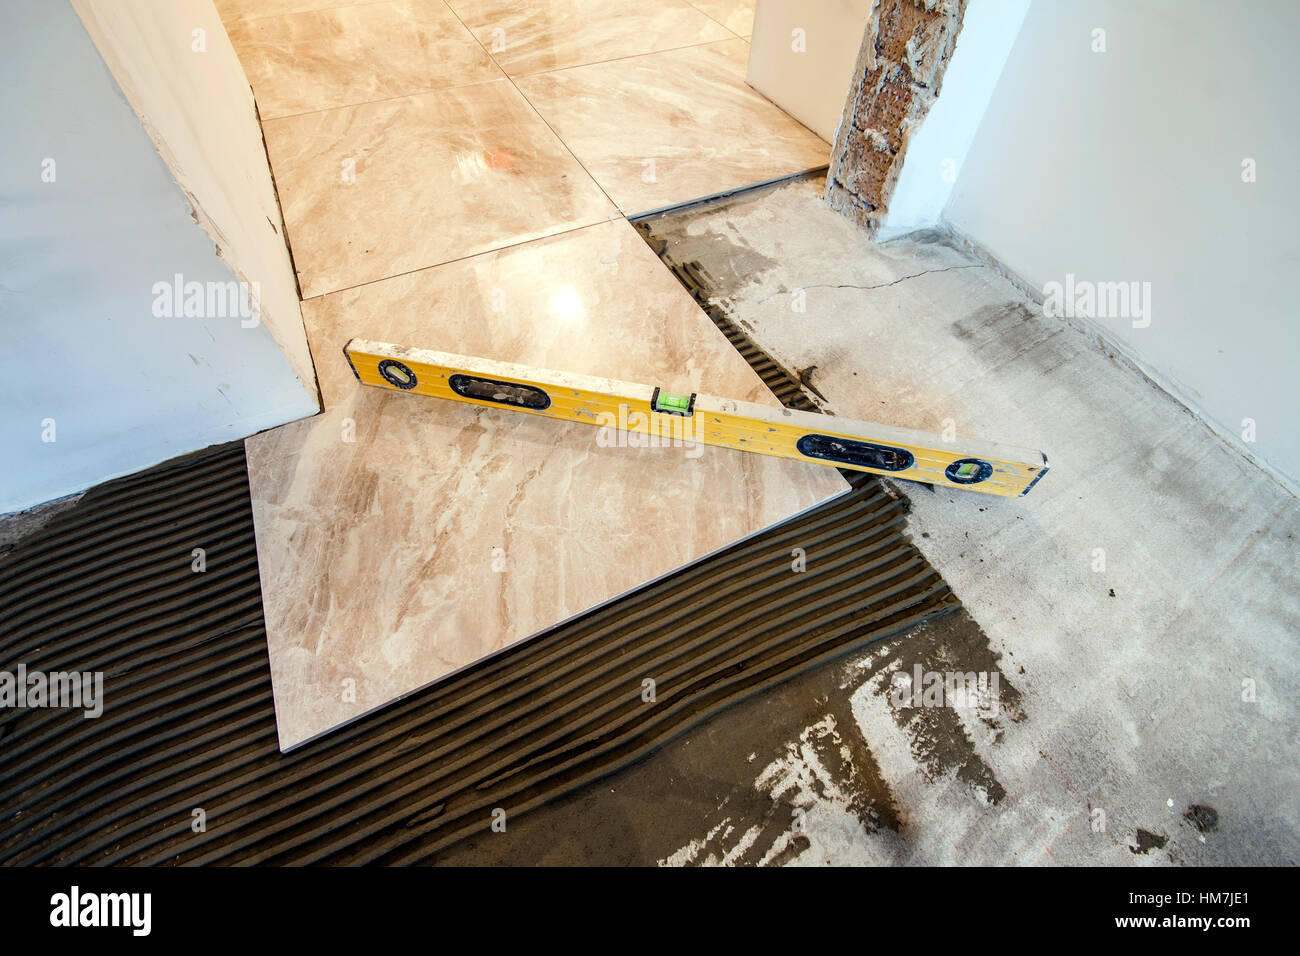 Ceramic tiles and tools for tiler floor tiles installation home ceramic tiles and tools for tiler floor tiles installation home improvement renovation ceramic tile floor adhesive mortar level dailygadgetfo Images